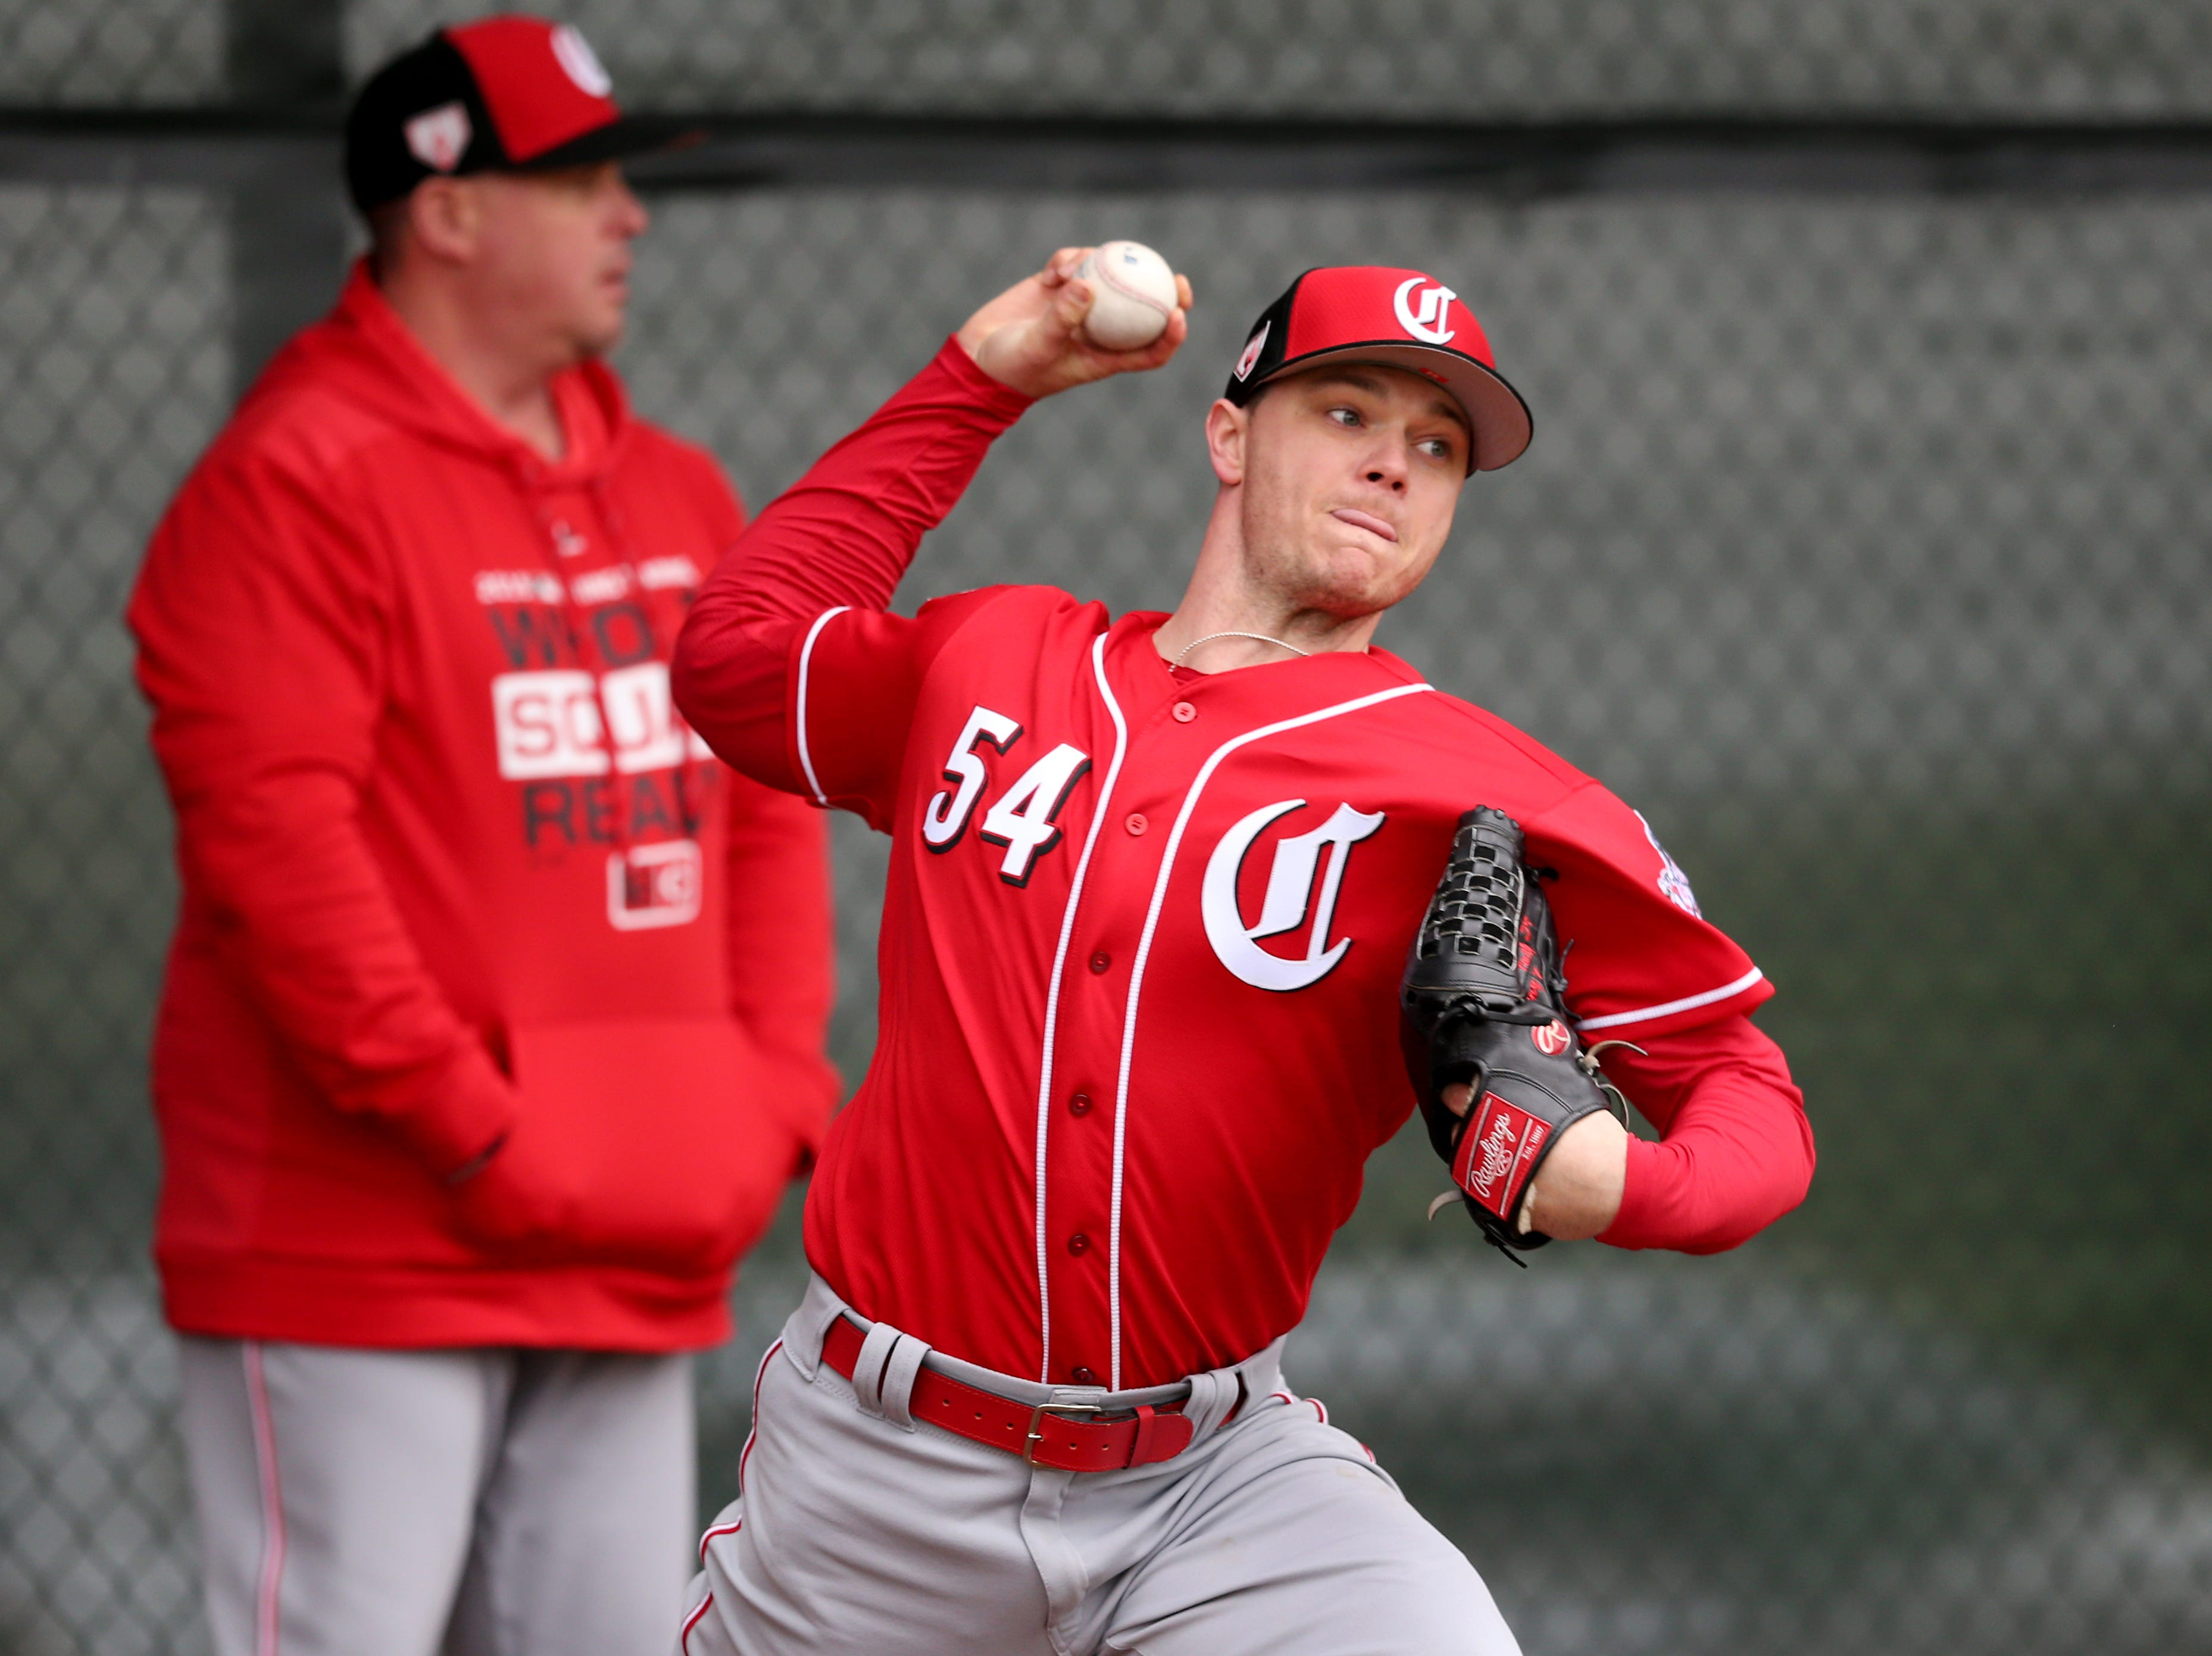 Cincinnati Reds starting pitcher Sonny Gray (54) delivers during a bullpen session as pitching coach Derek Johnson stands in the background, Thursday, Feb. 14, 2019, at the Cincinnati Reds spring training facility in Goodyear, Arizona.